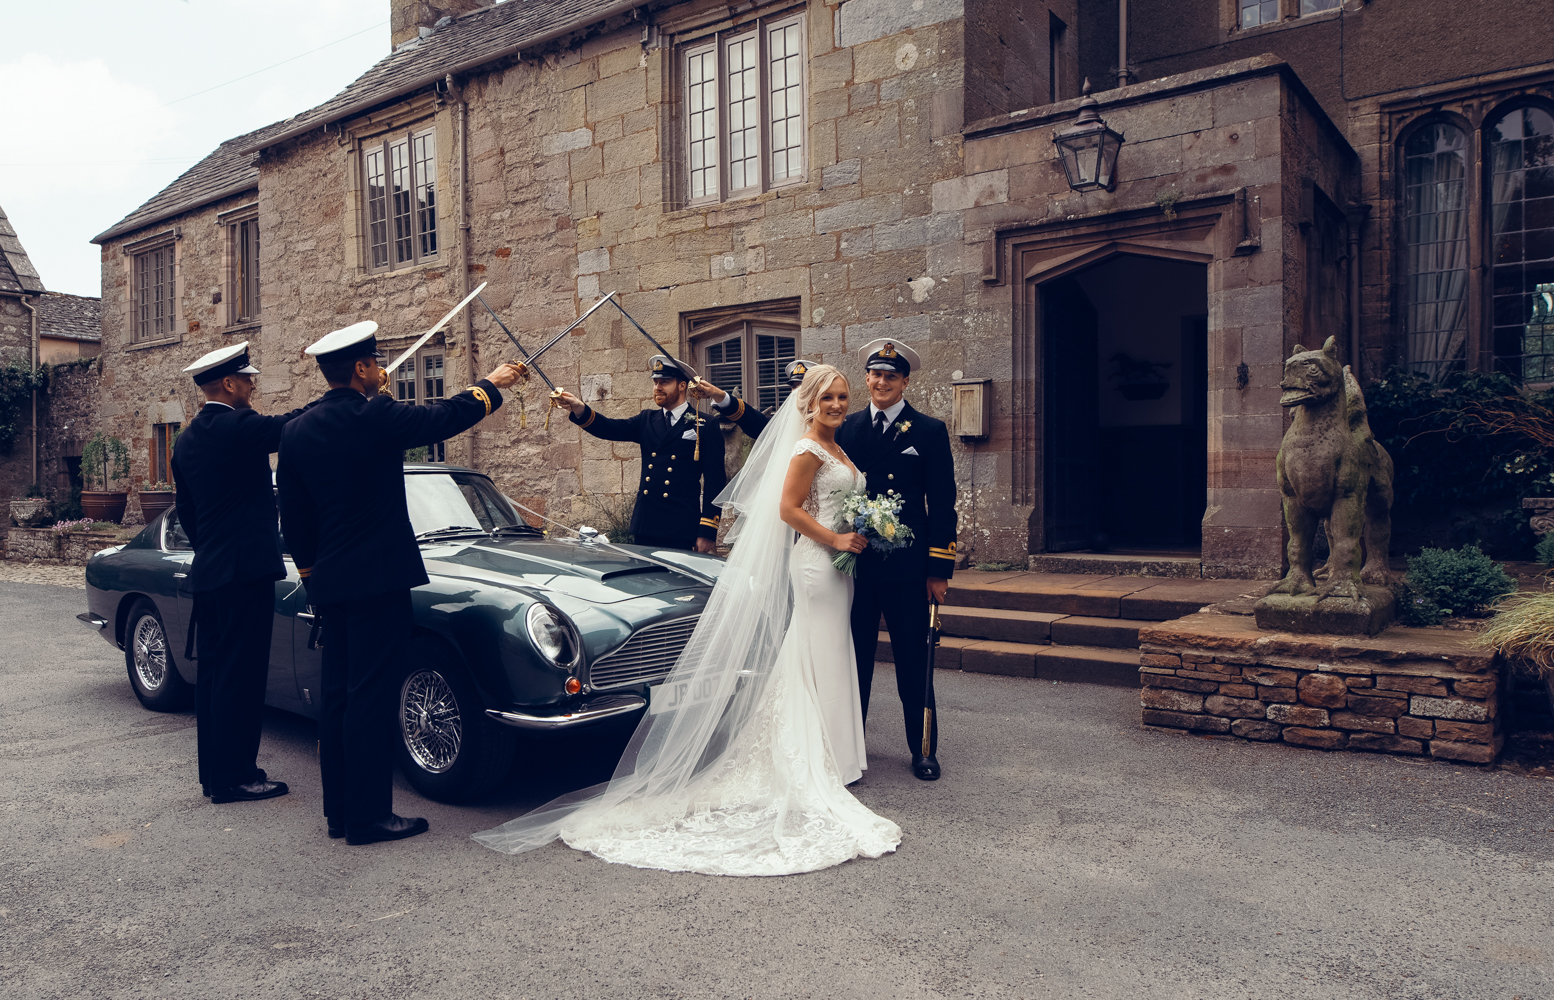 Guard of honour with the bride and groom and Aston Martin